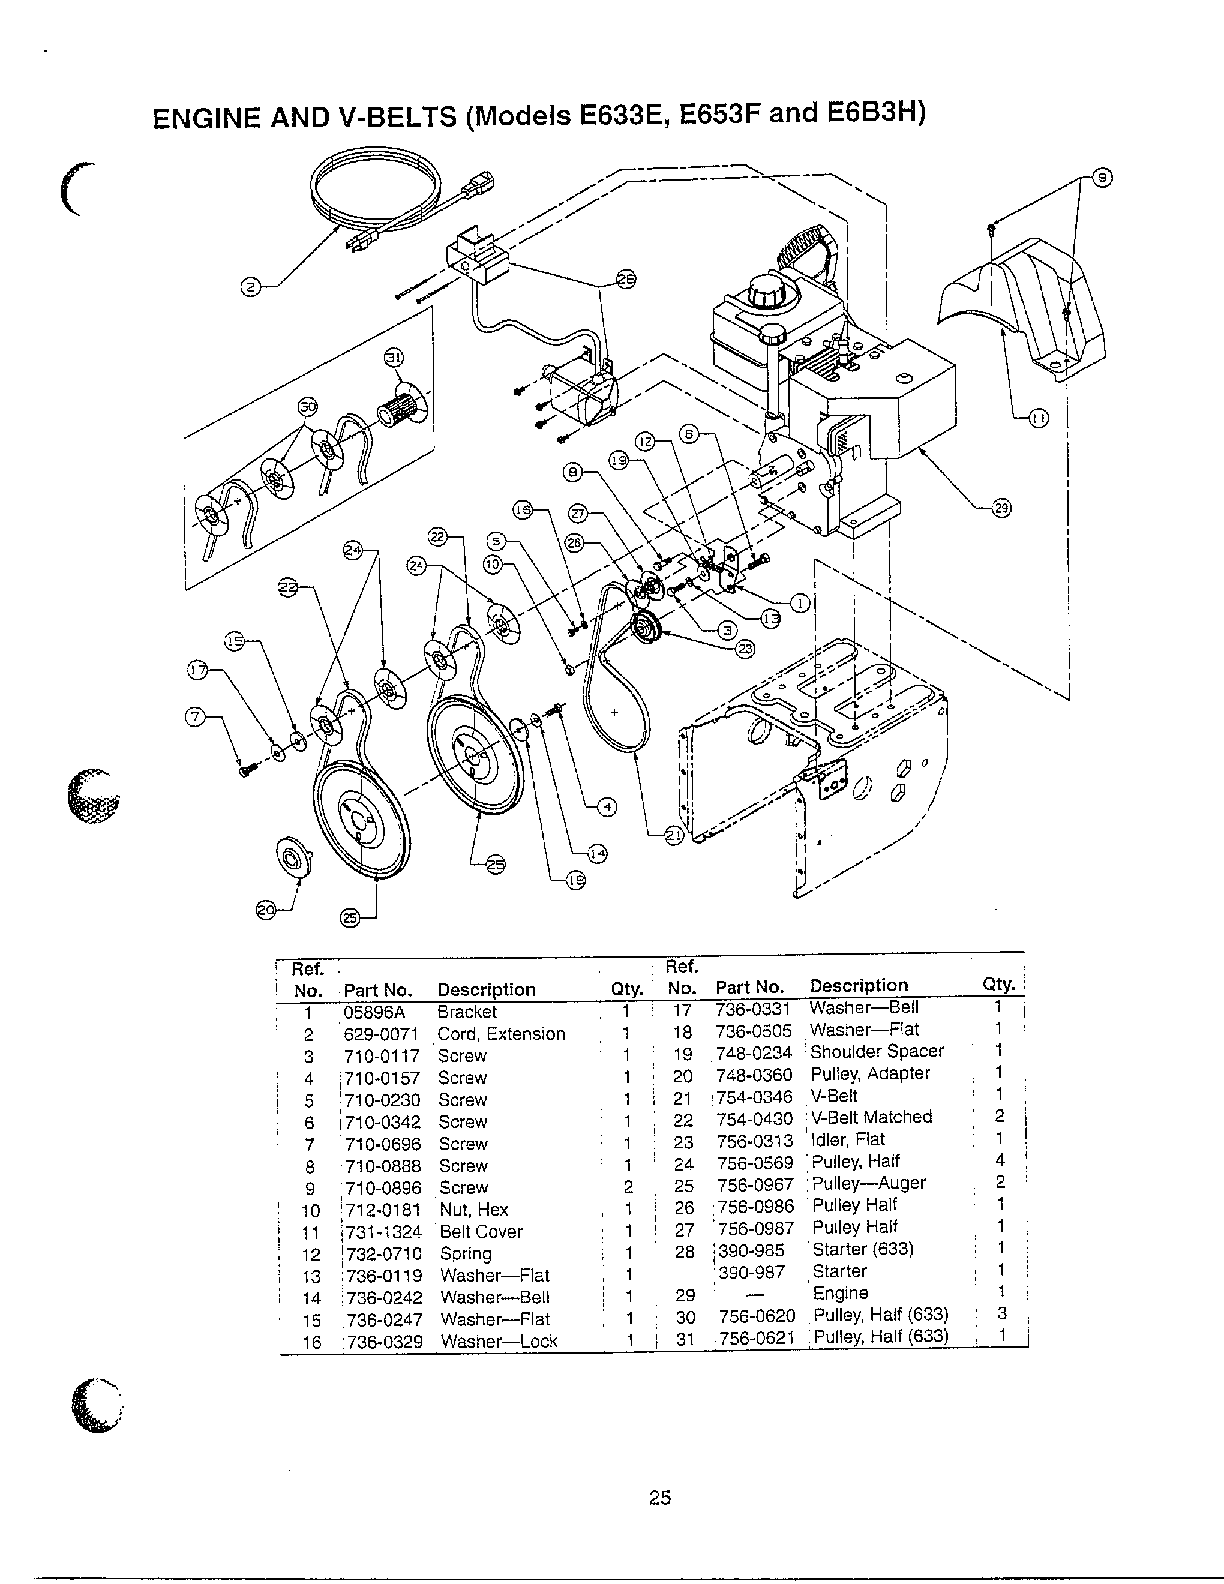 MTD E623D engine and v-belts page 2 diagram